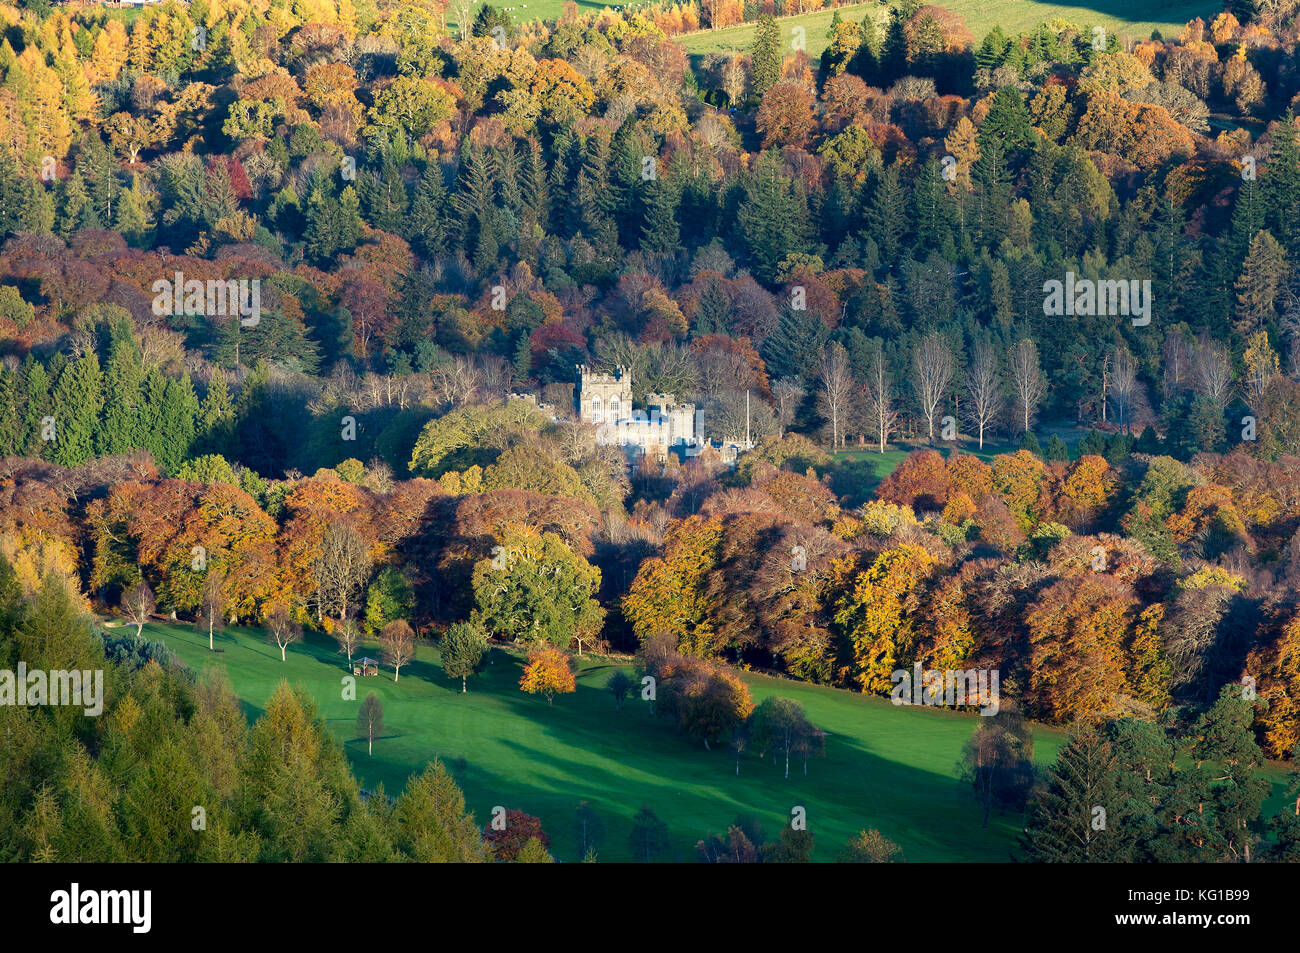 Taymouth Castle, Kenmore, Perthshire, Scotland. - Stock Image